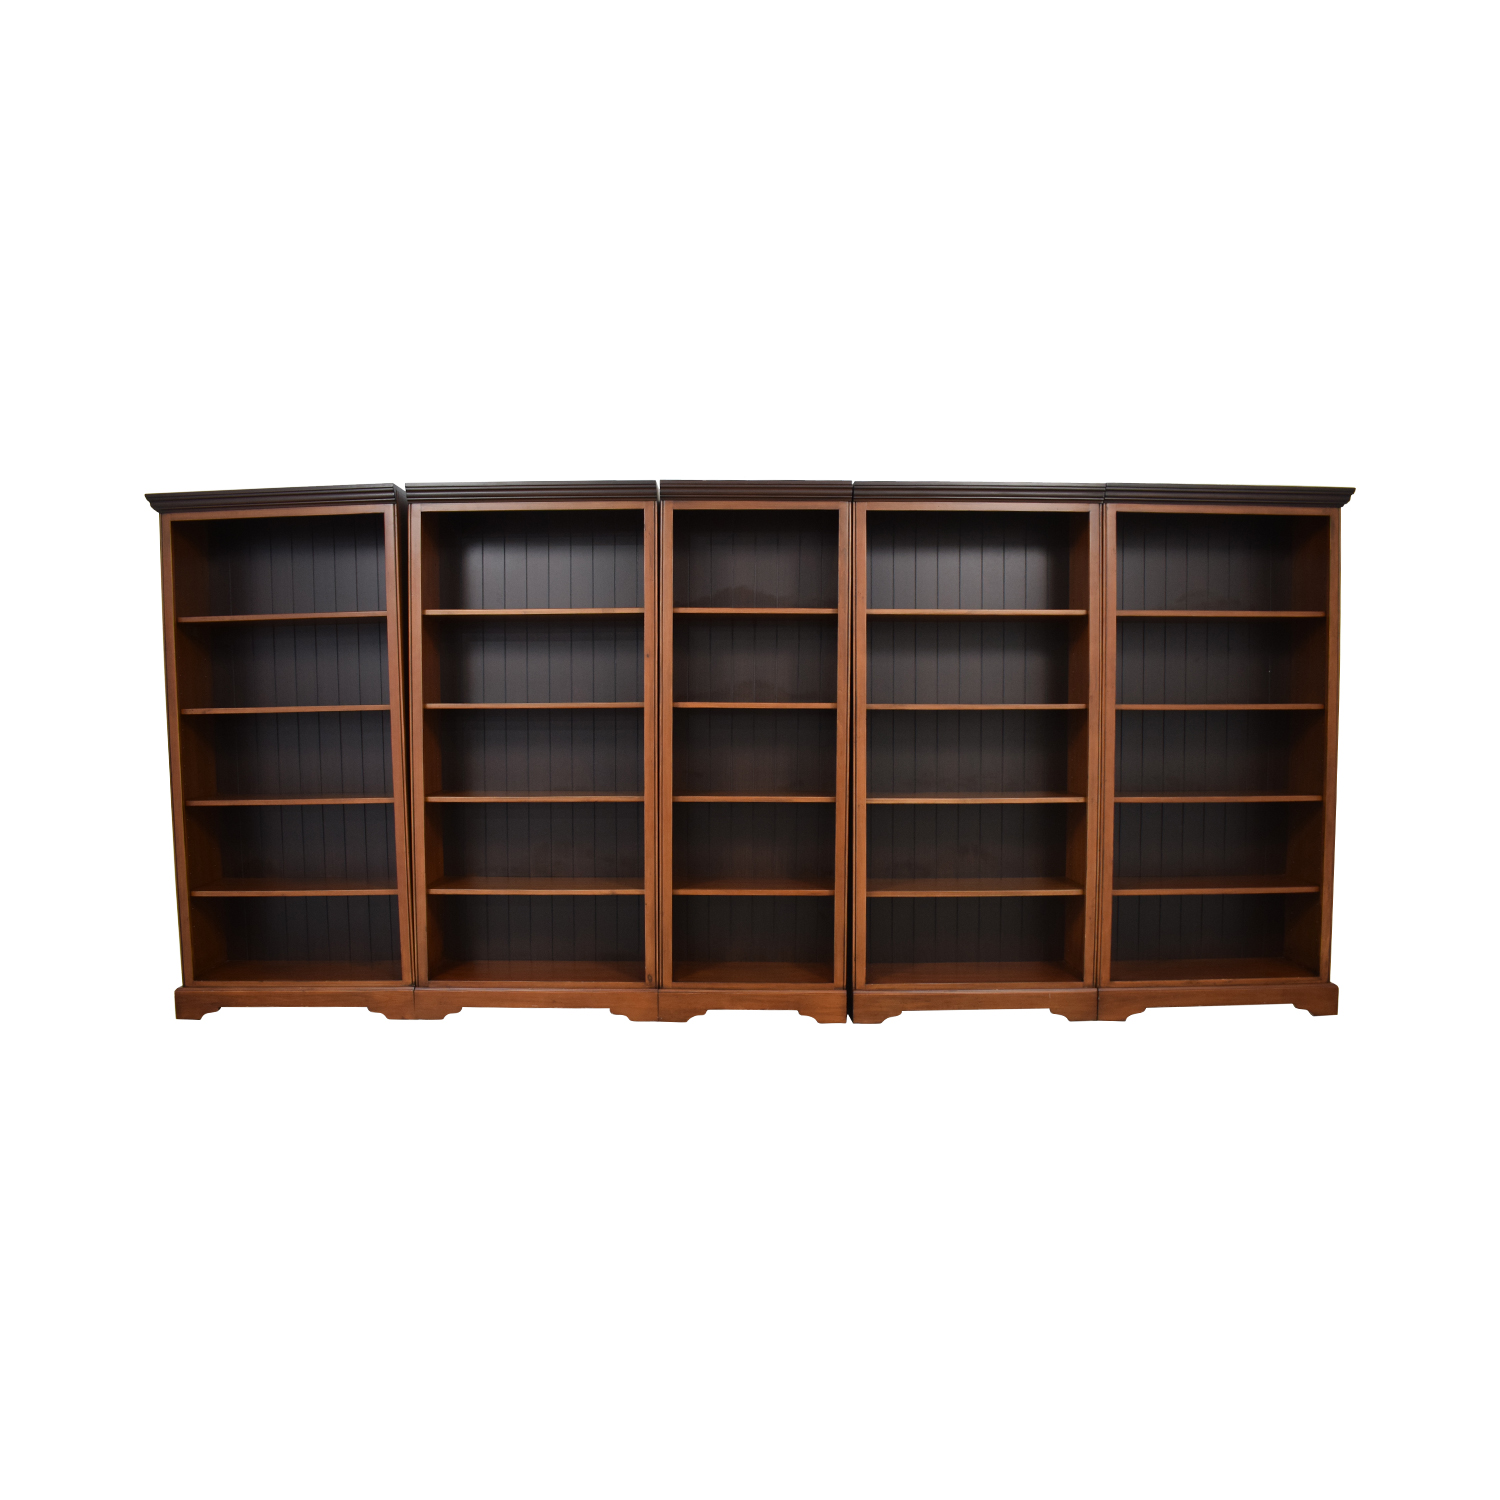 Country Willow Country Willow Five Wood Bookcases on sale